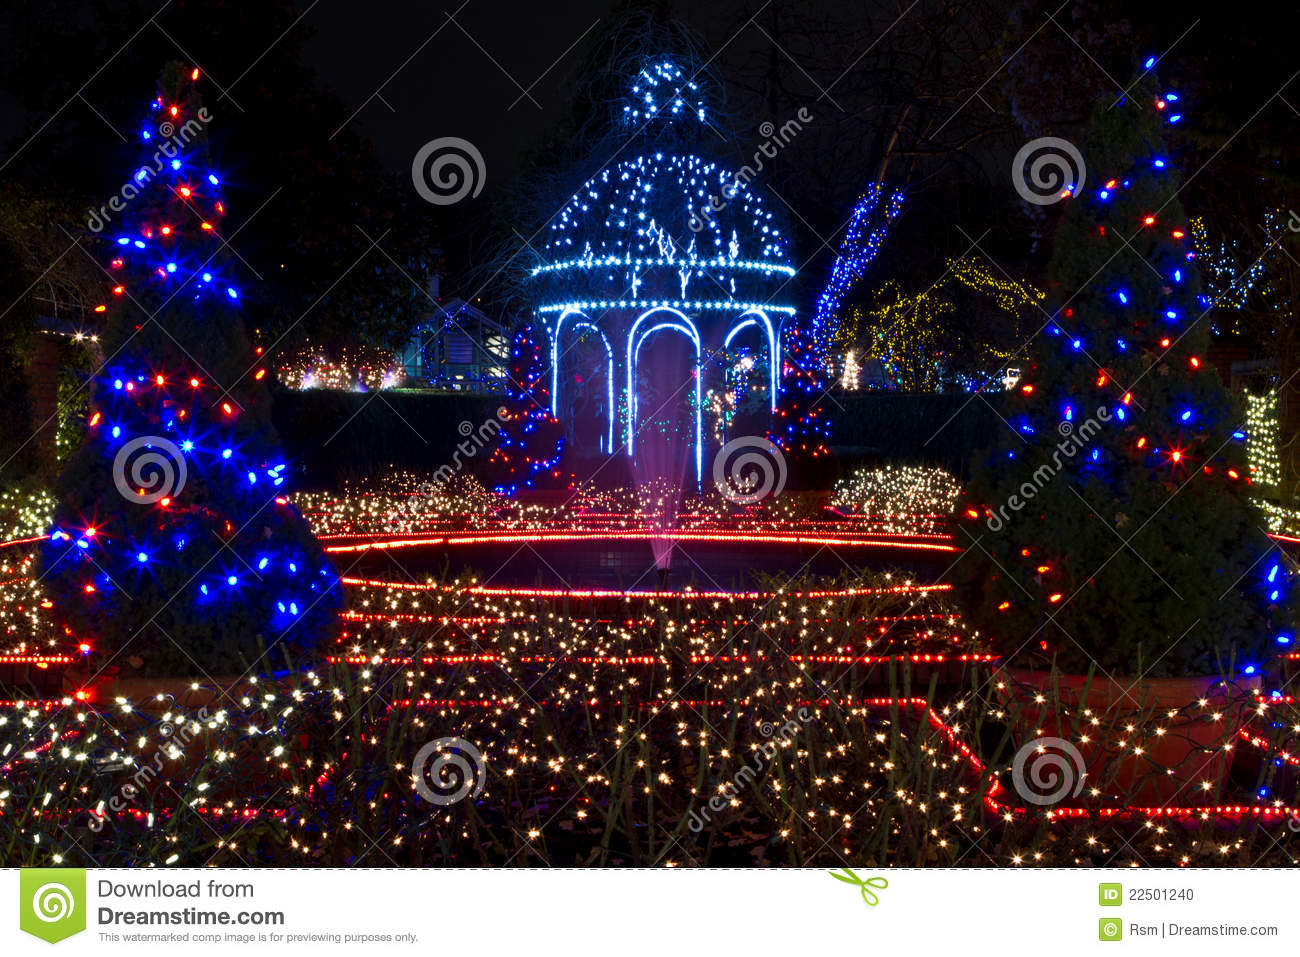 Christmas light display at park and tilford gardens with two decorated